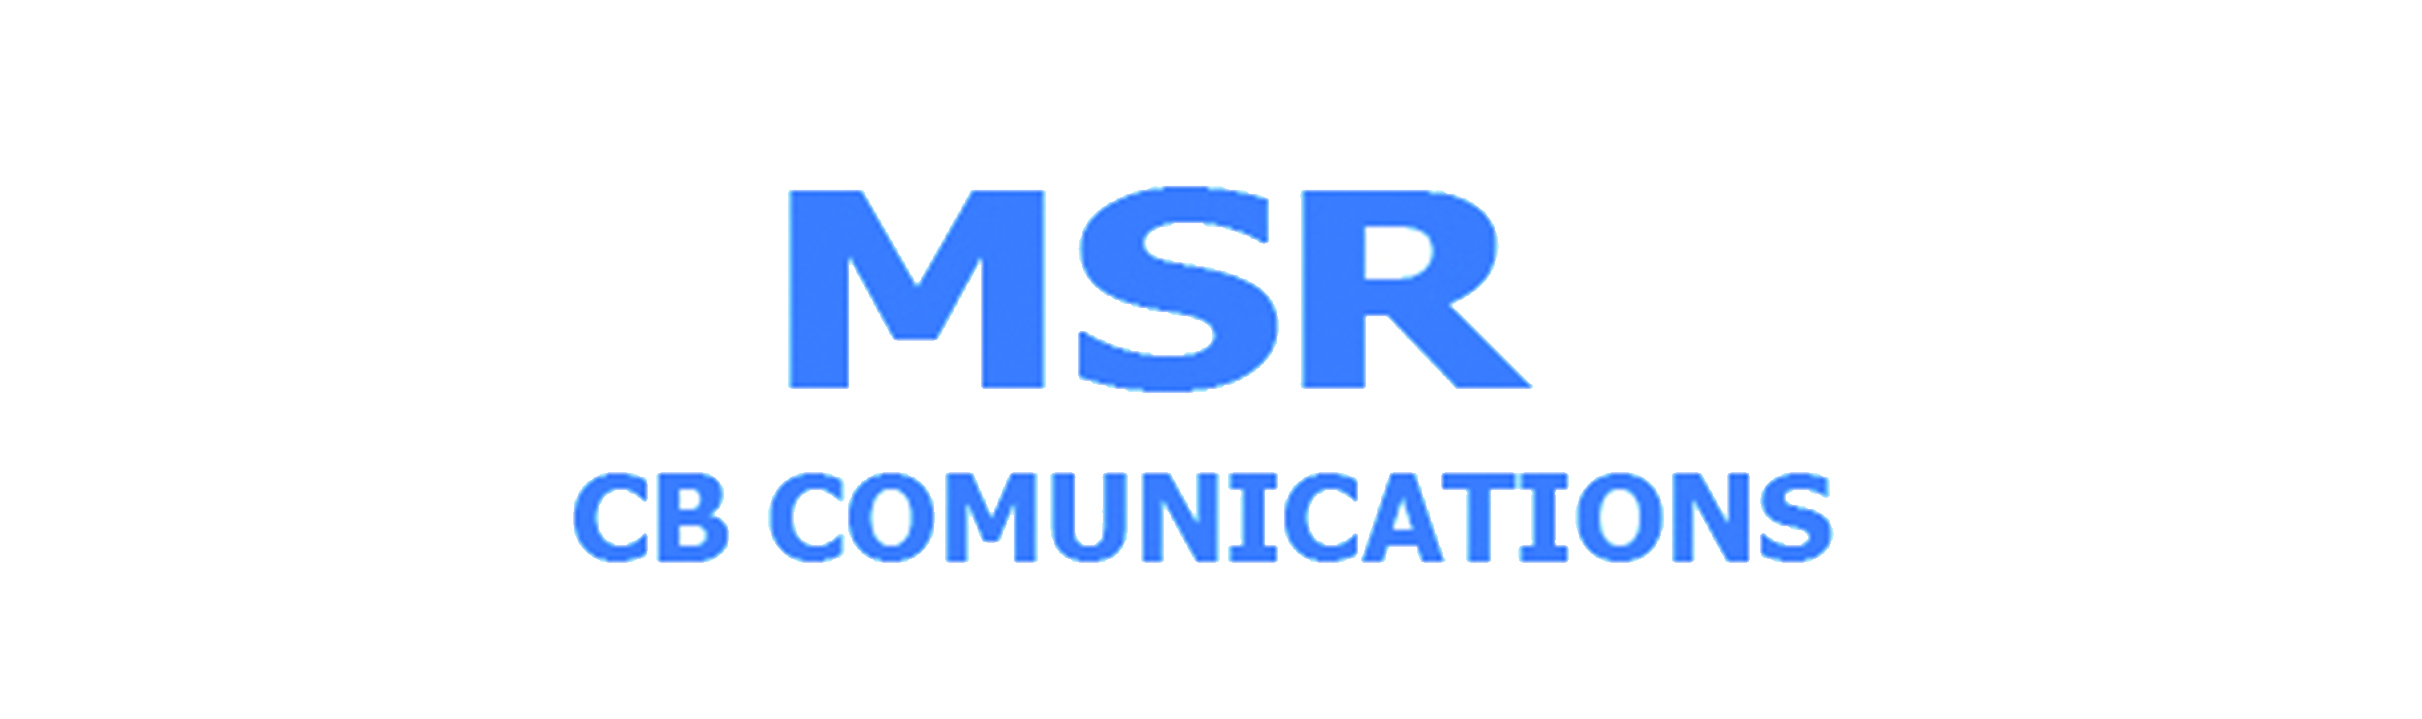 MSR CB comunications